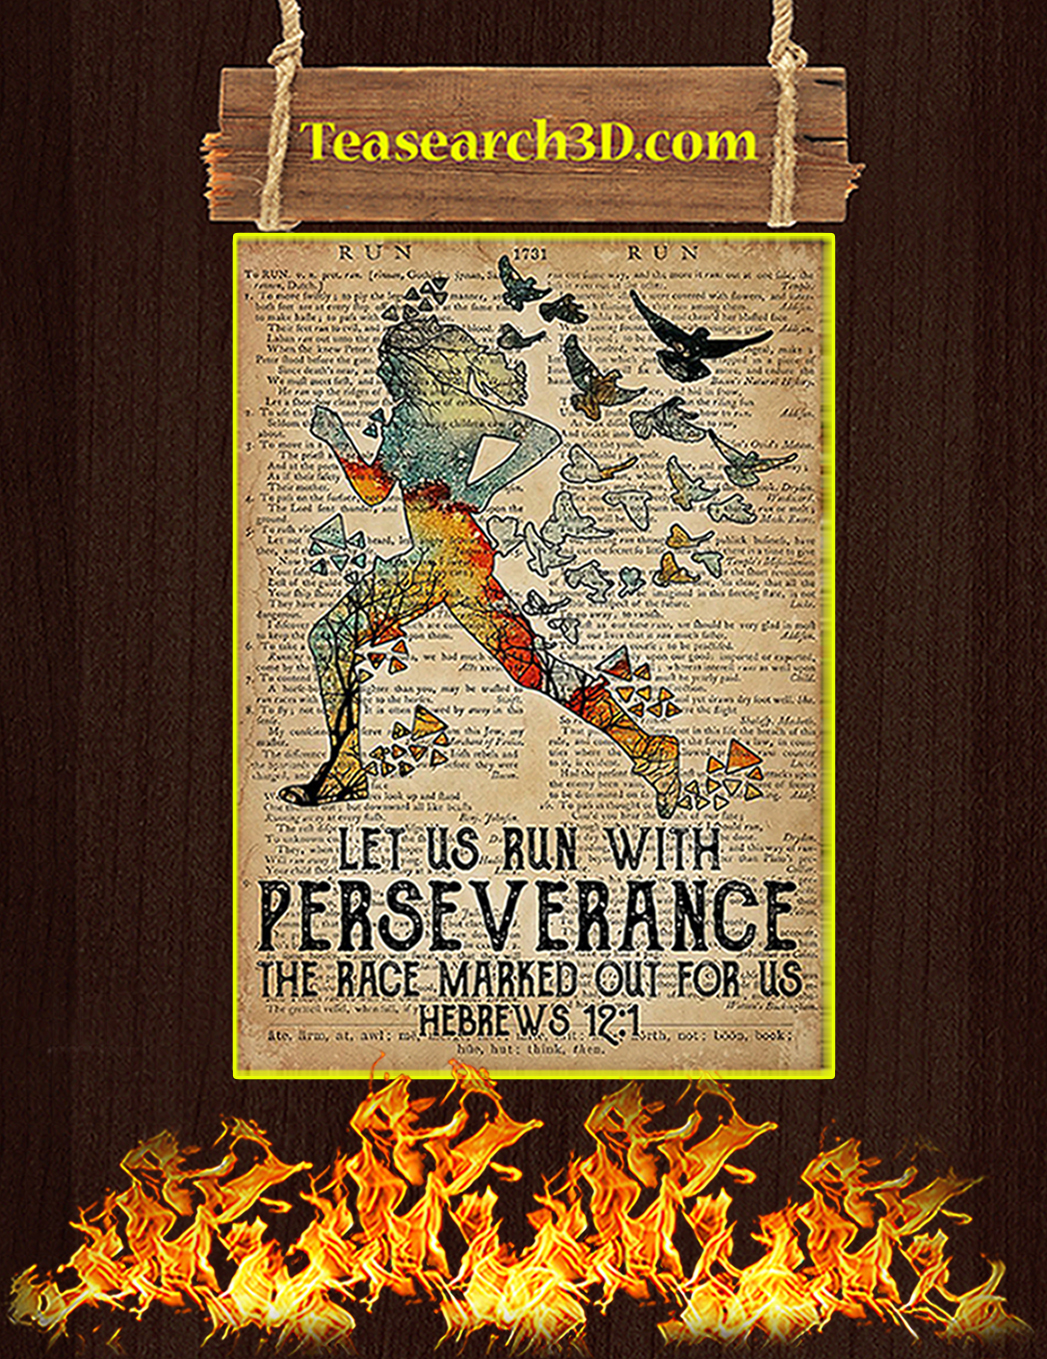 Running let us run with perseverance poster A1